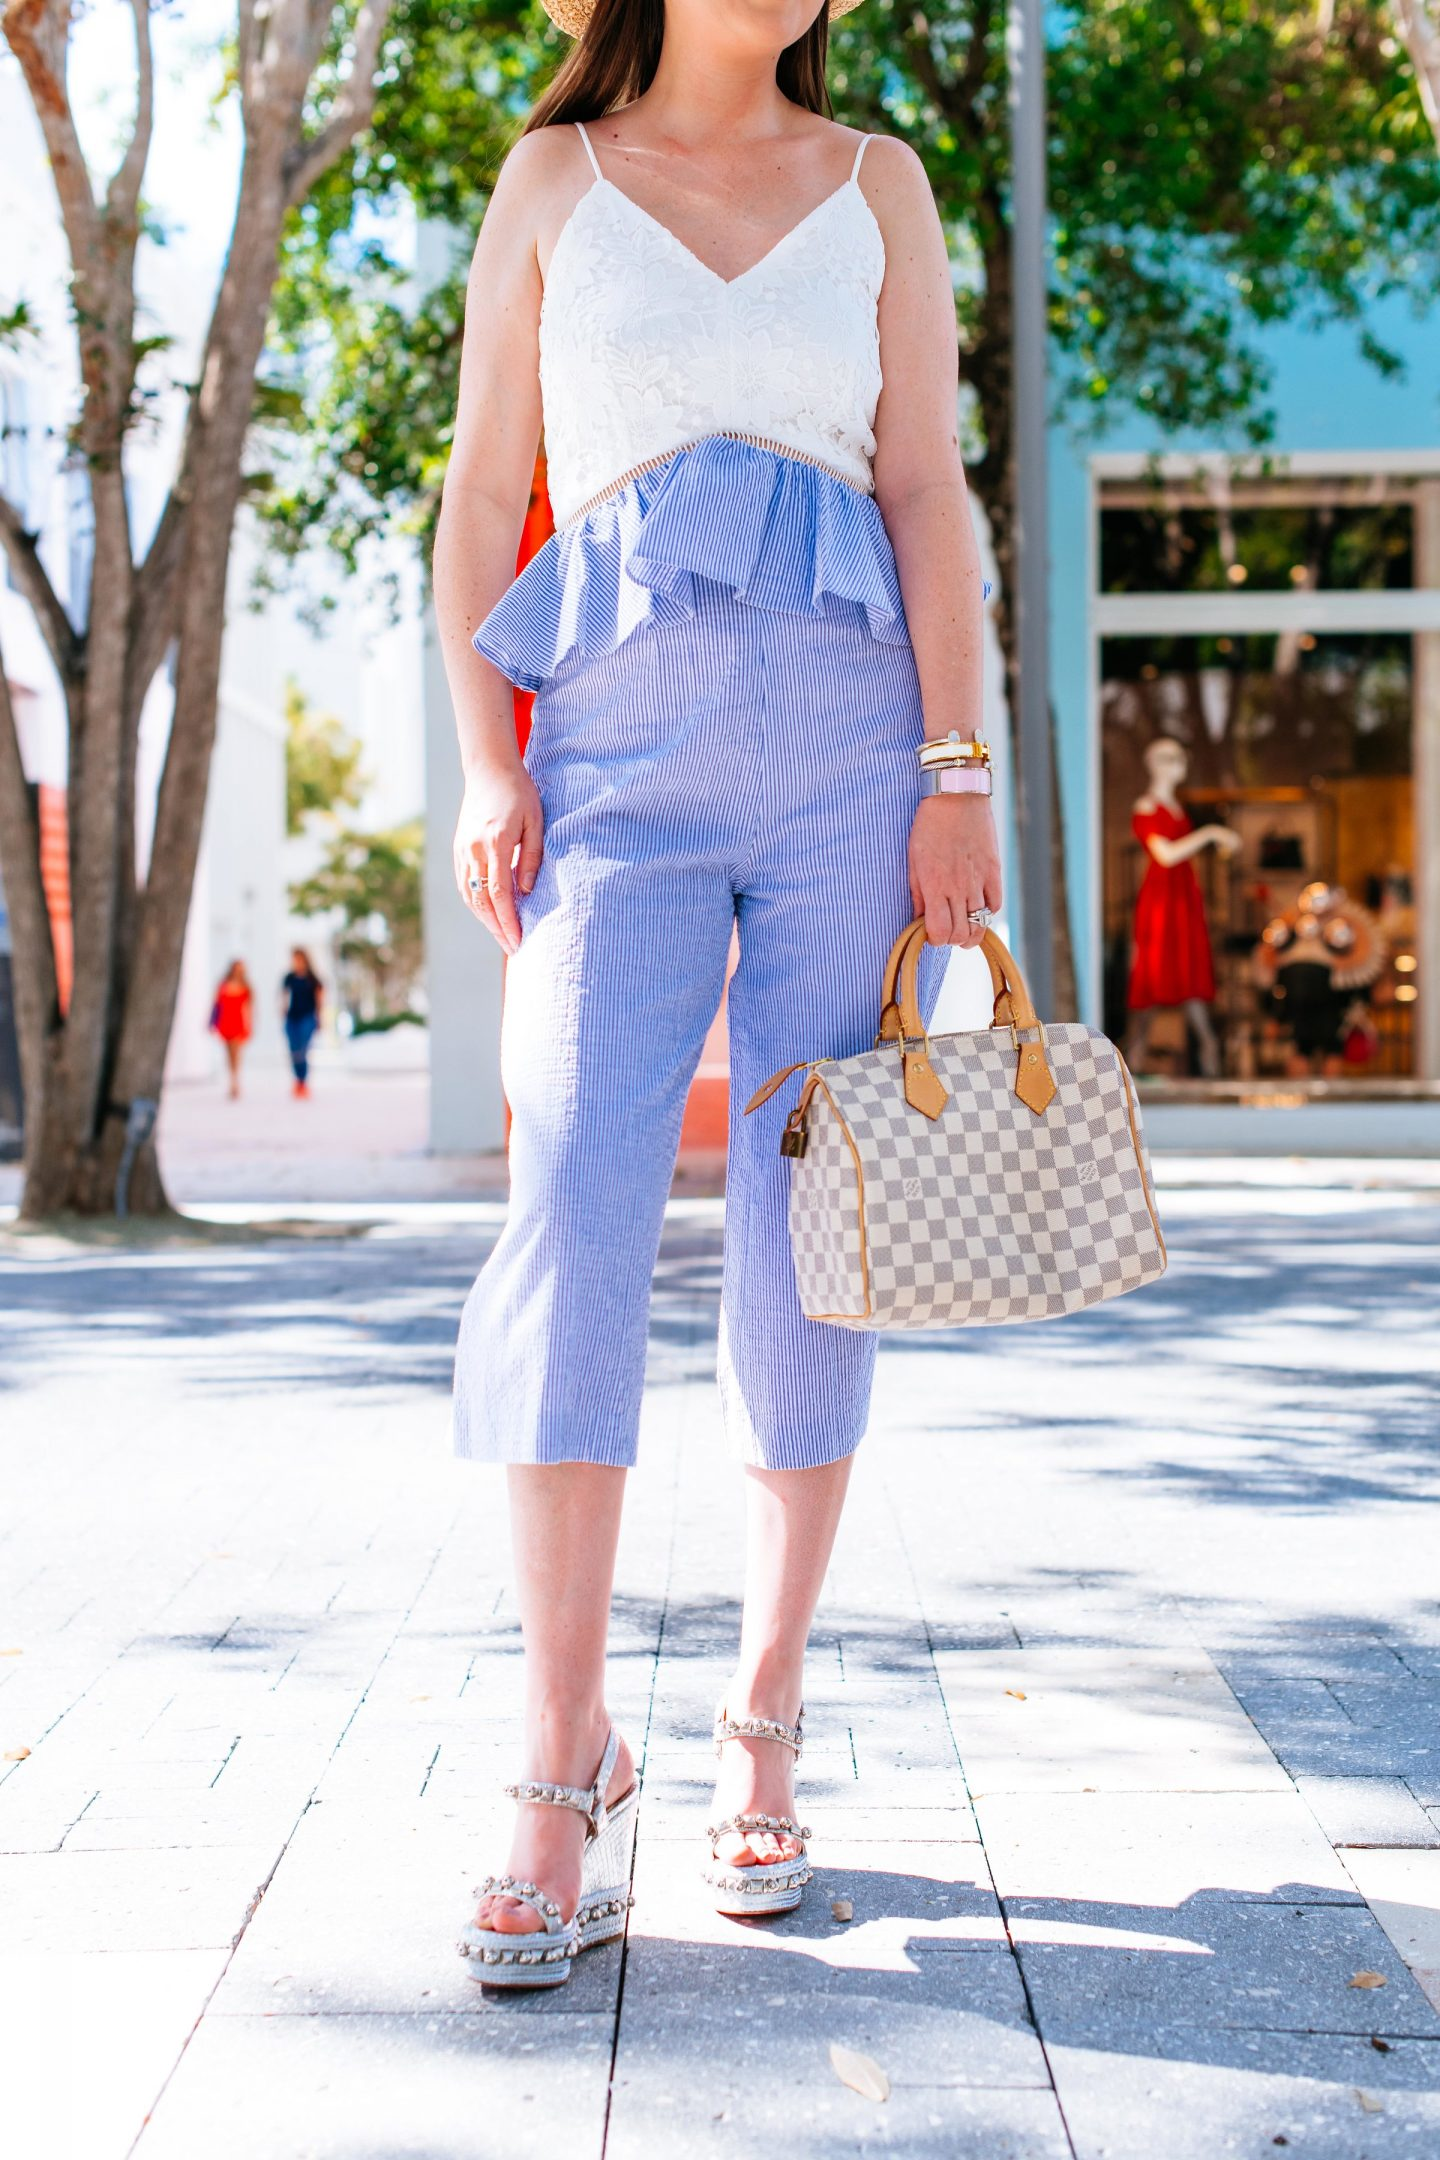 7 SUMMER FASHION HACKS TO BEAT THE HEAT, summer fashion hacks, romper, Louis Vuitton speedy damier Azur, seersucker romper, summer fashion 2018, louboutin cataclou